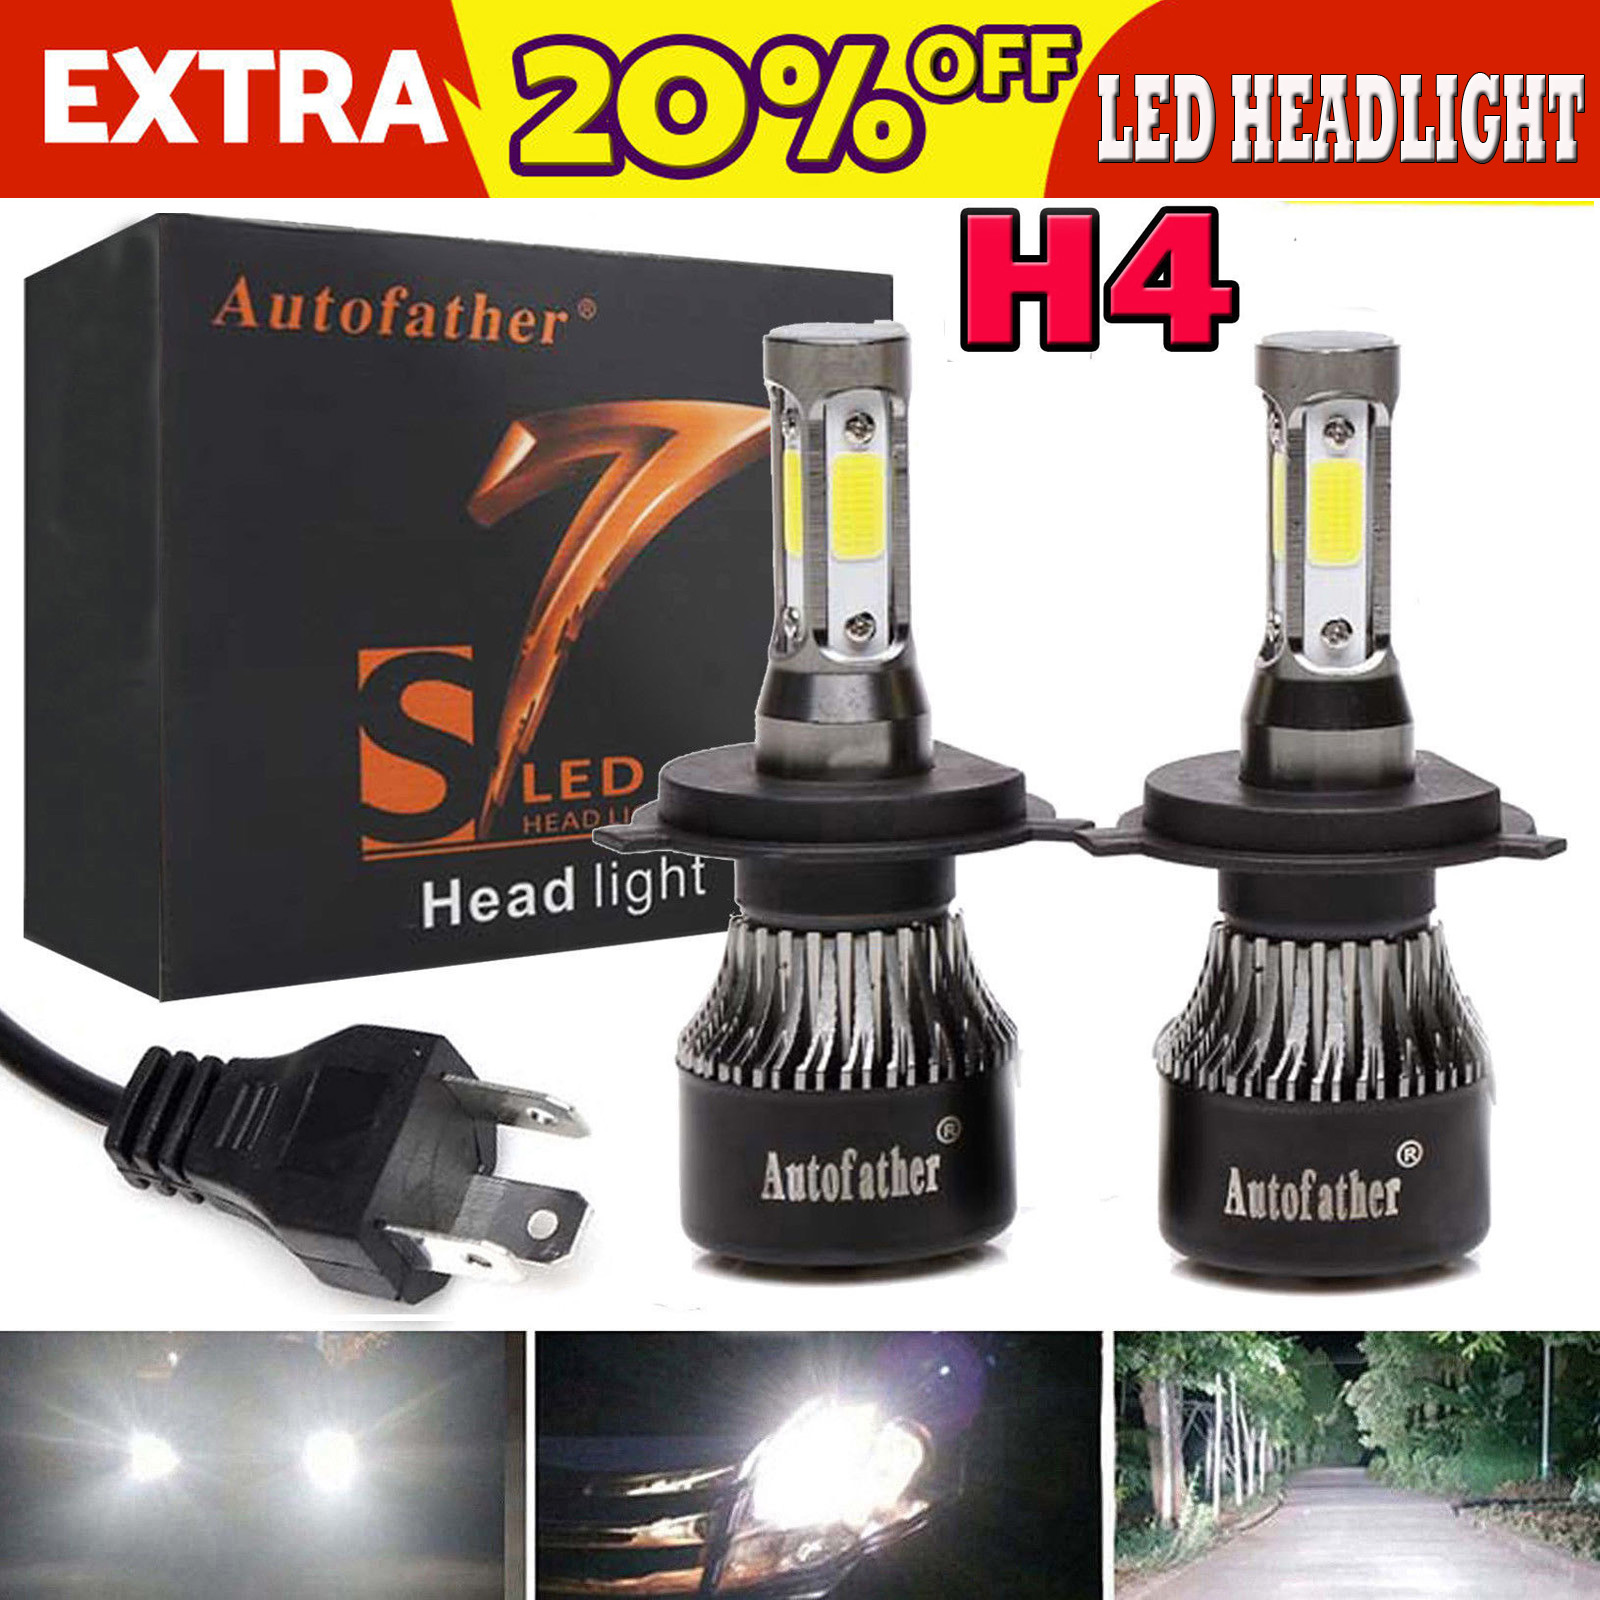 9003 H4 LED Headlight Bulb for Toyota 4Runner Tacoma Sienna Tundra RAV4 Corolla